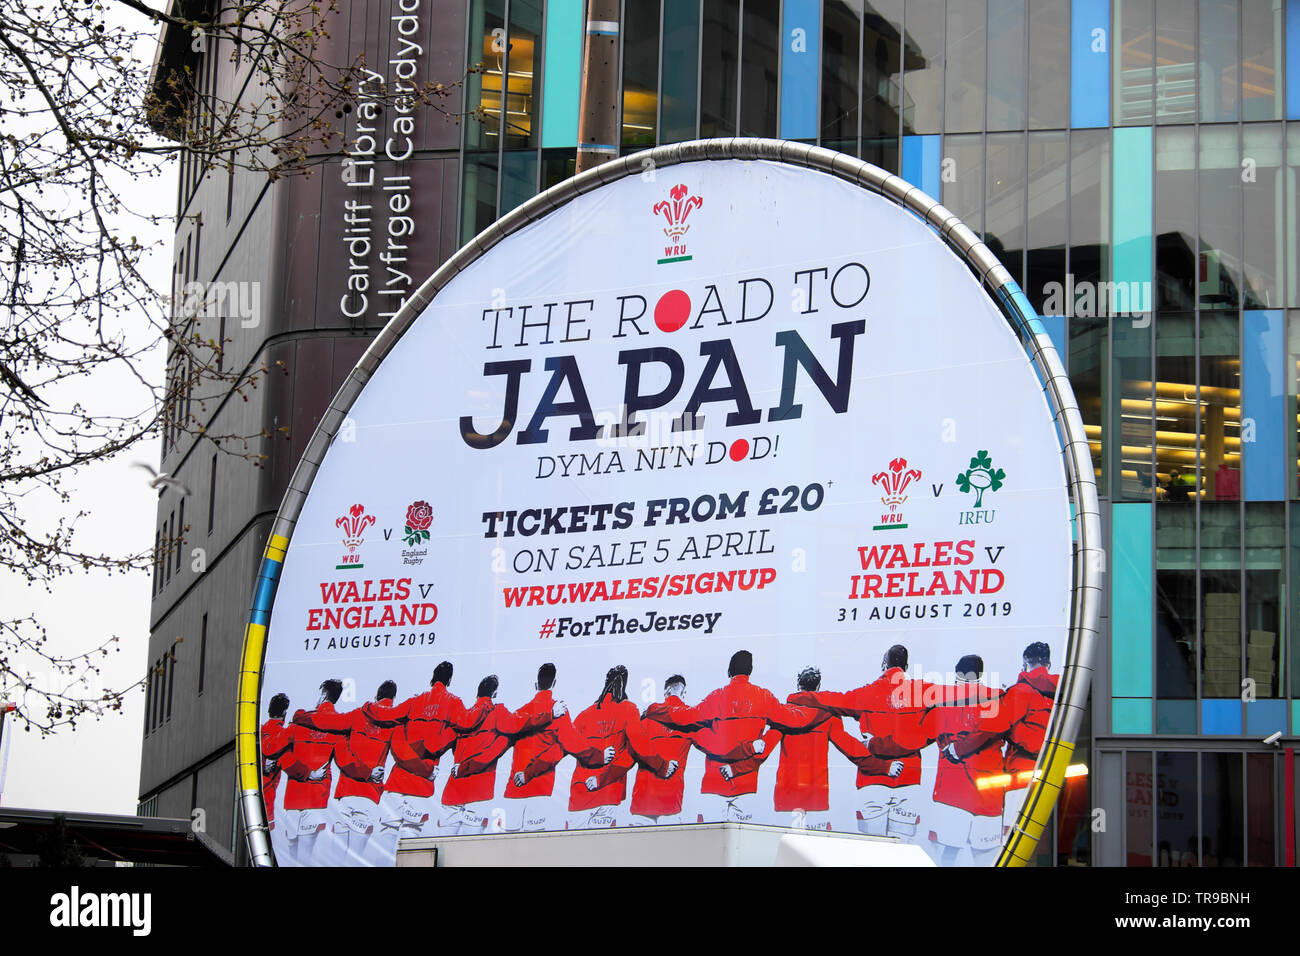 WRU Welsh Rugby Union 'The Road to Japan' advert sign outside the Cardiff Central Library for ticket sales to Wales v Ireland & Wales v England Wales - Stock Image